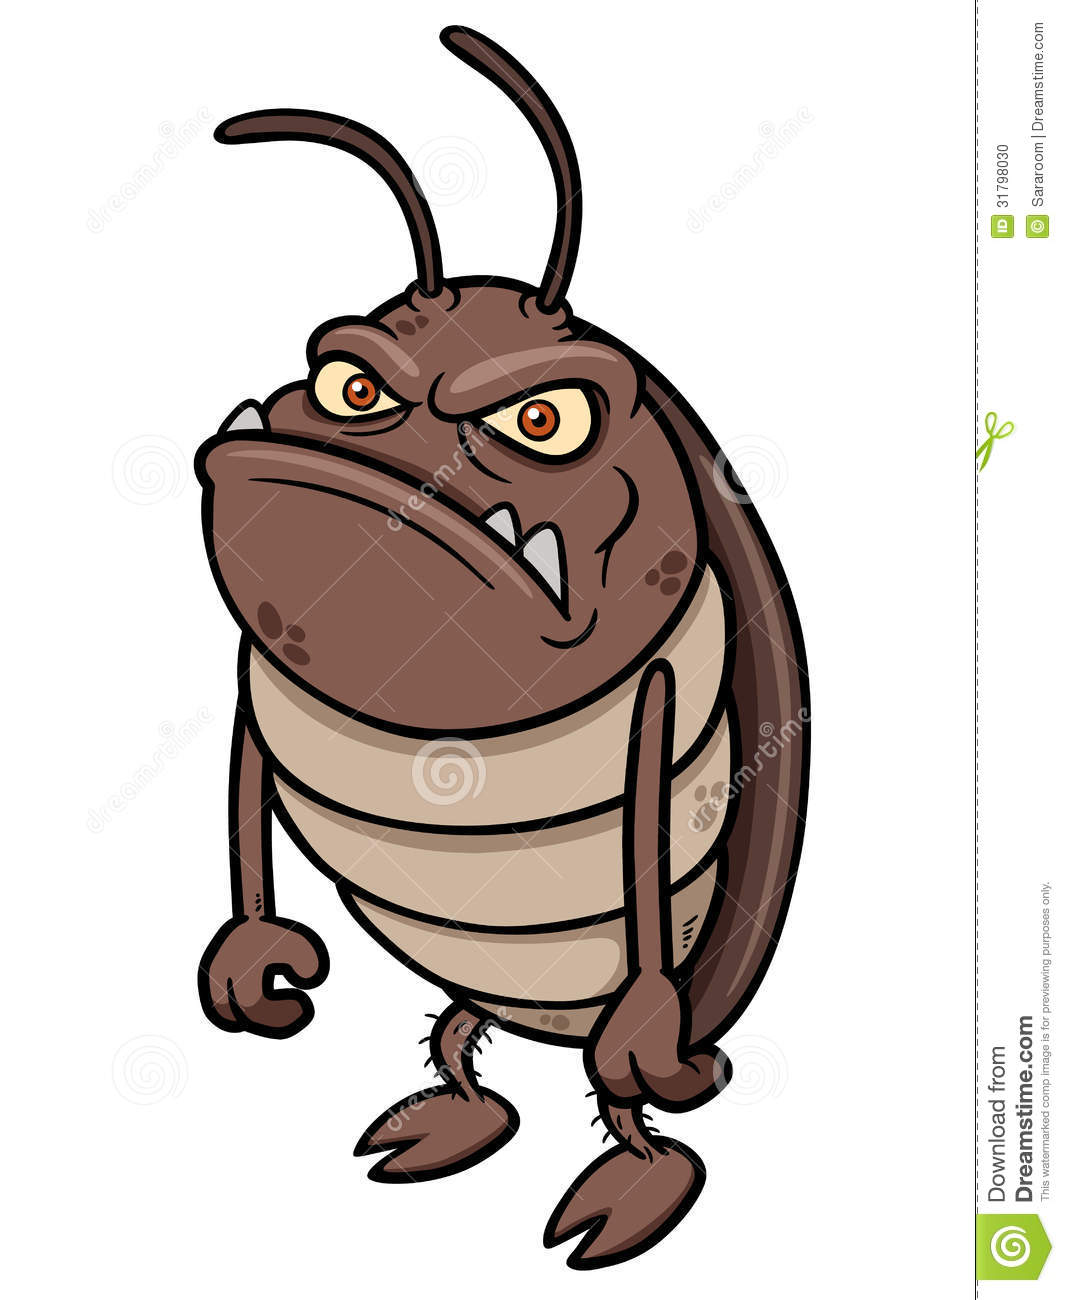 Cartoon Cockroach Stock Photo - Image: 31798030